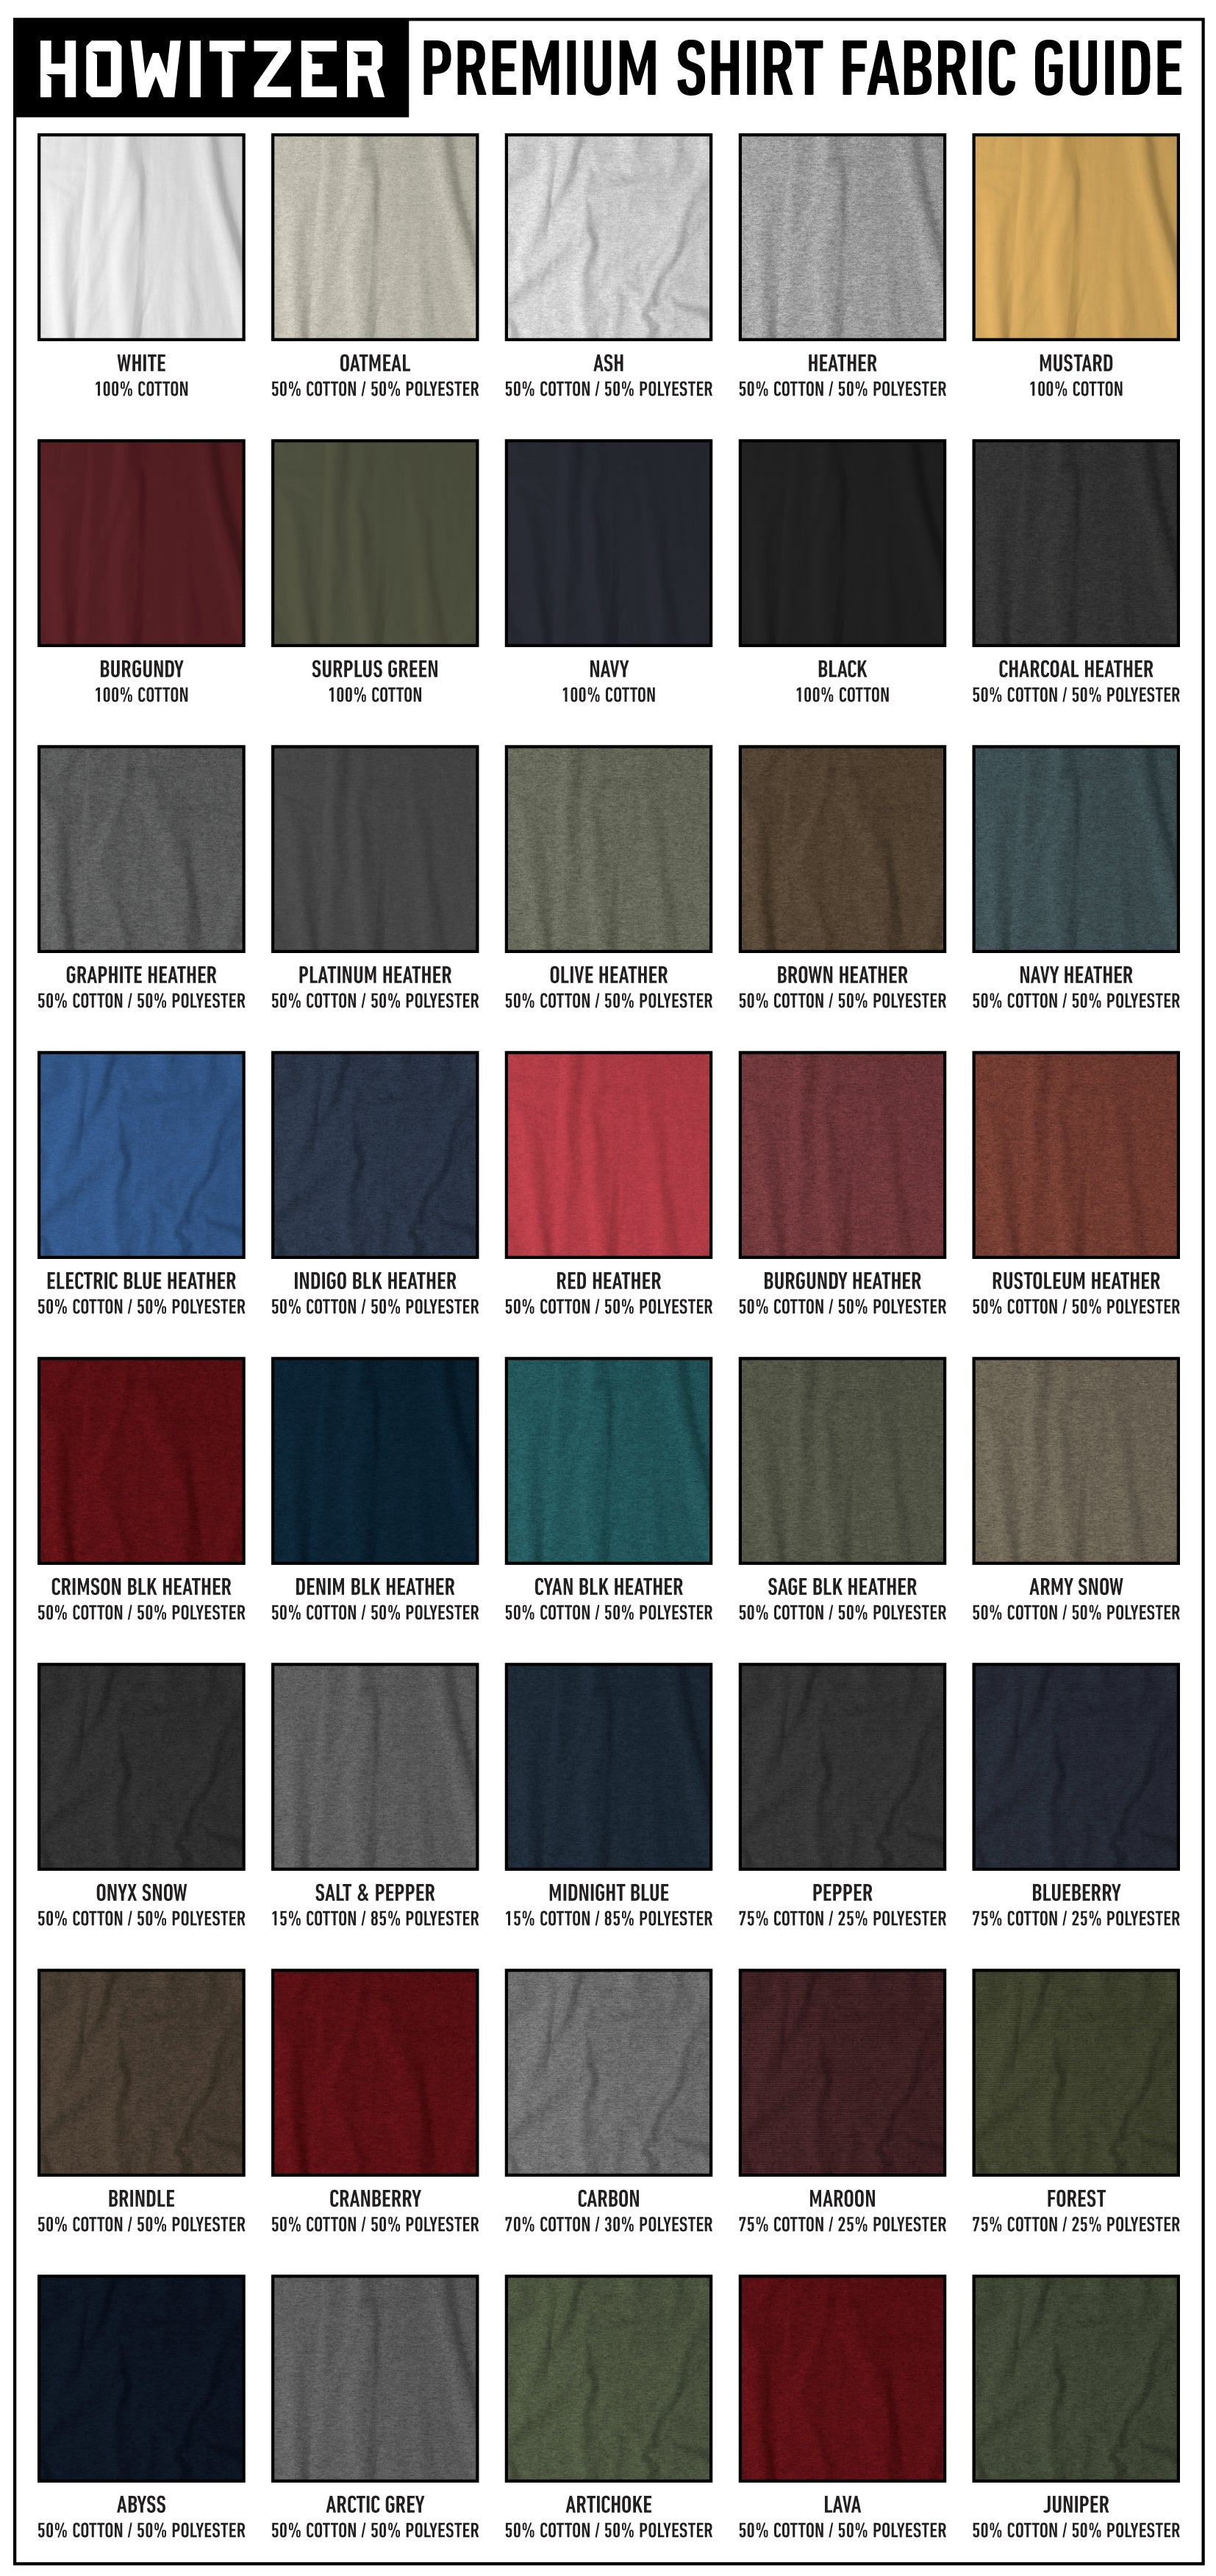 howitzer clothing fabric guide